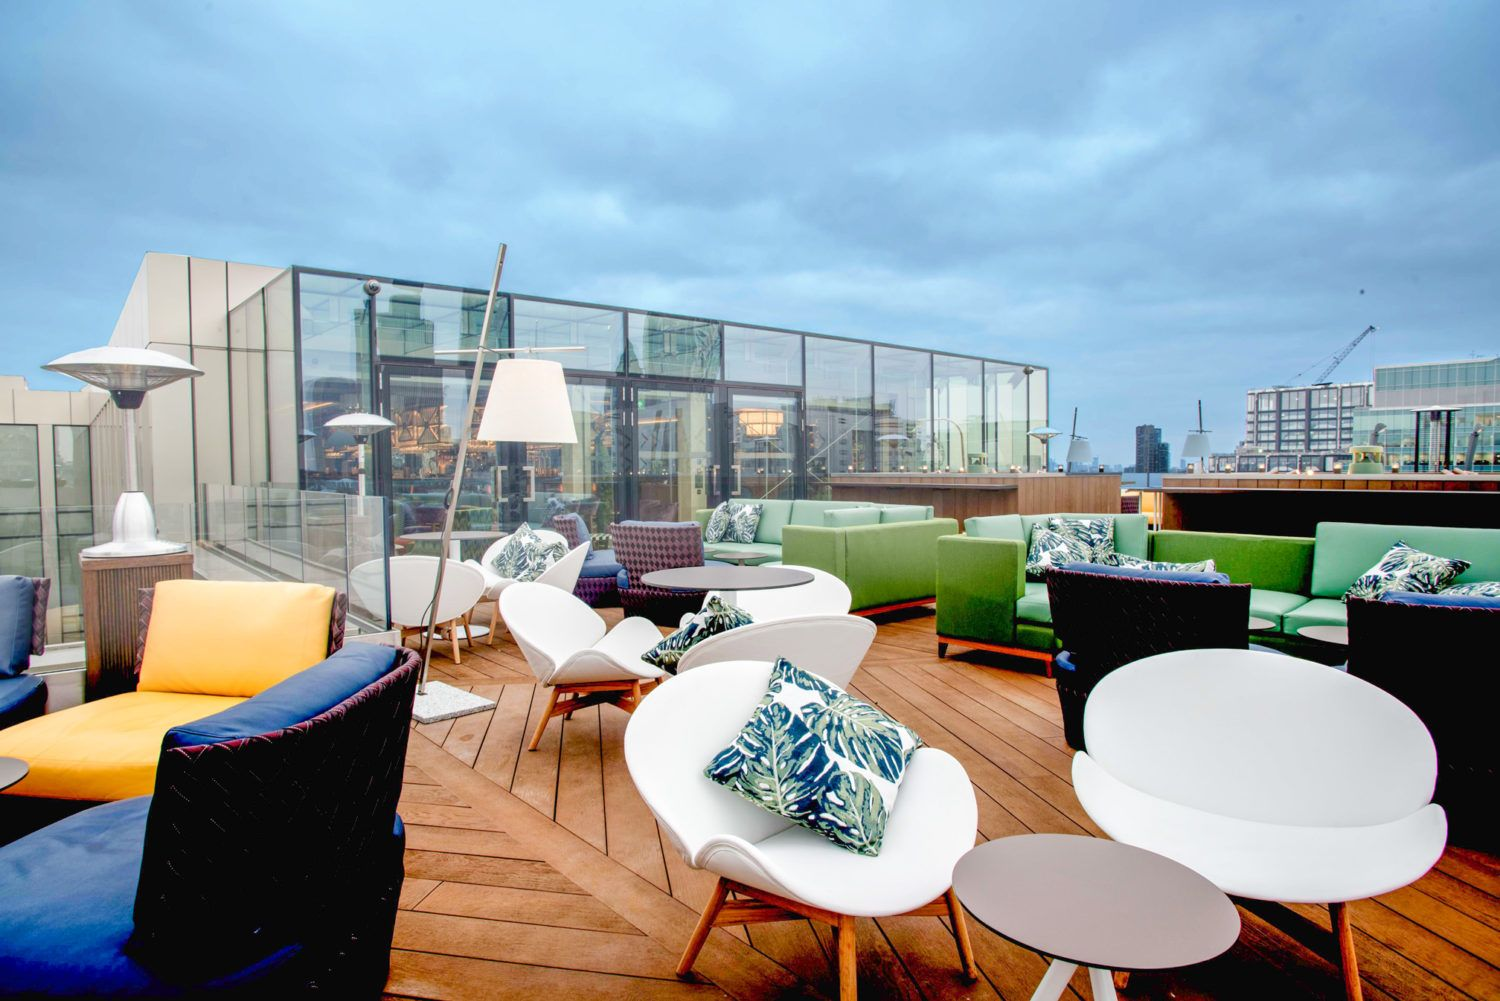 Aviary London 39 S Hottest Rooftop Restaurant And Terrace Bar Is Situated On The 10th Floor O Rooftop Restaurant London Rooftop Bar Design Rooftop Restaurant